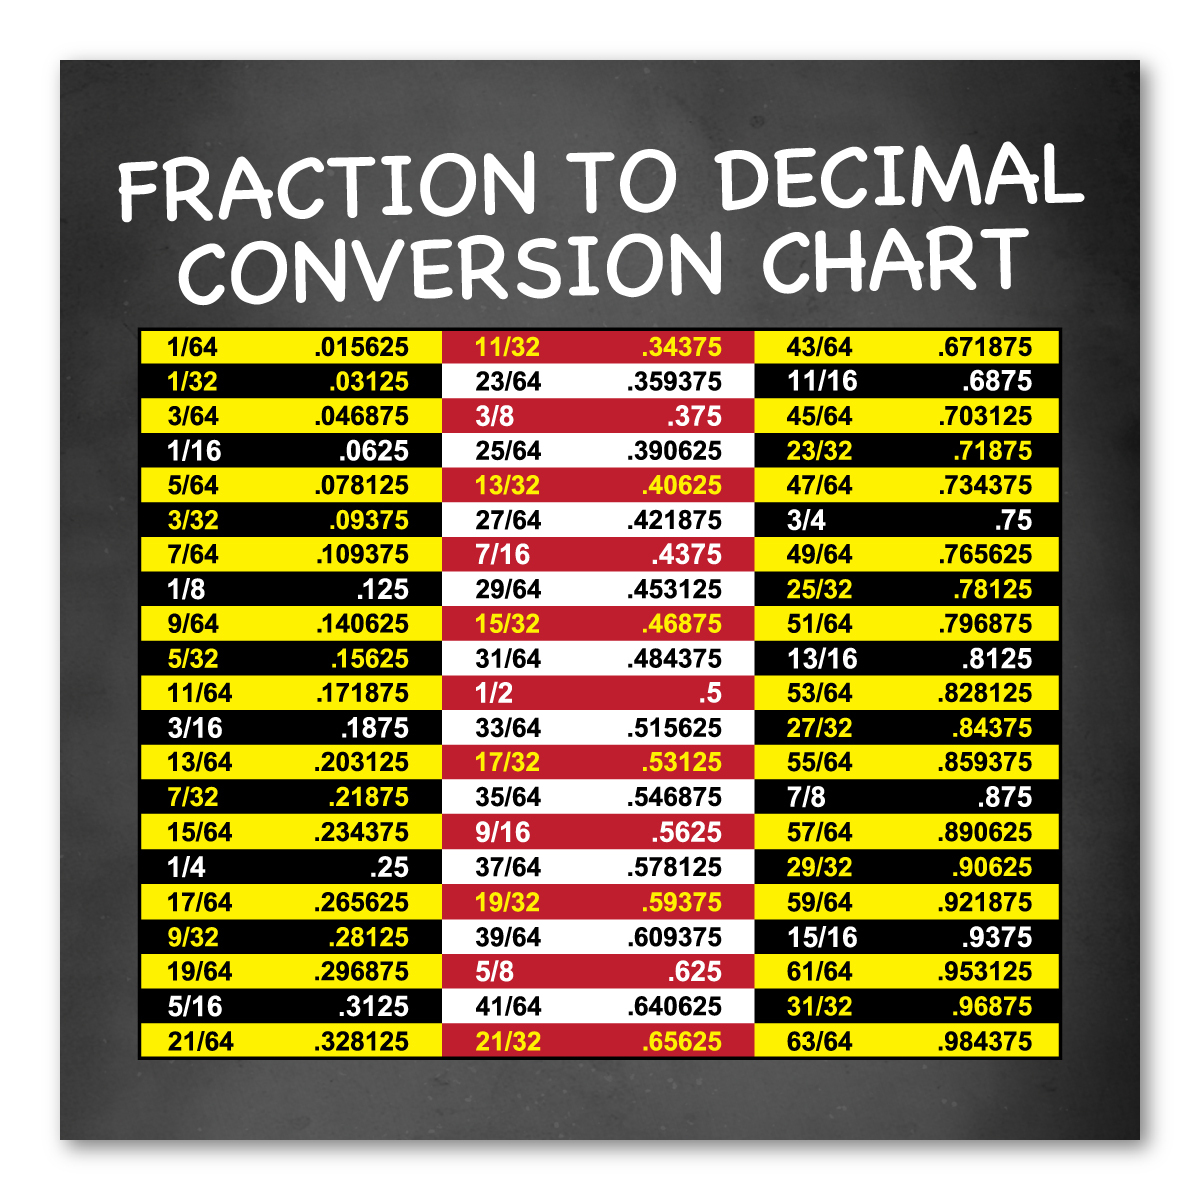 Decimal Conversion Chart | Fraction To Decimal Conversion Chart Indoor Magnet Magnet America